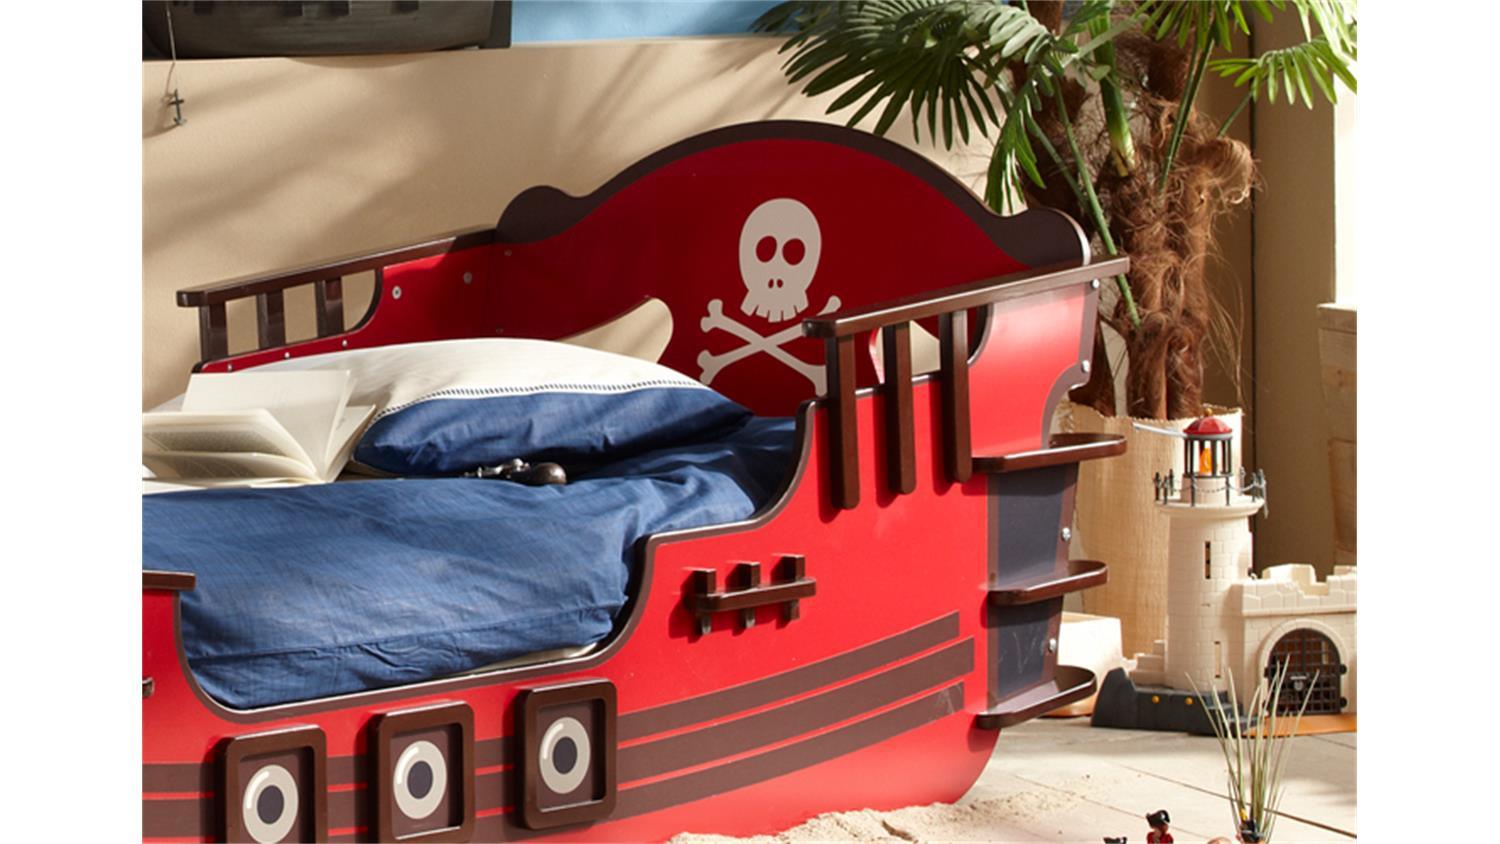 kinderbett piratenbett crazy shark in rot braun wei. Black Bedroom Furniture Sets. Home Design Ideas